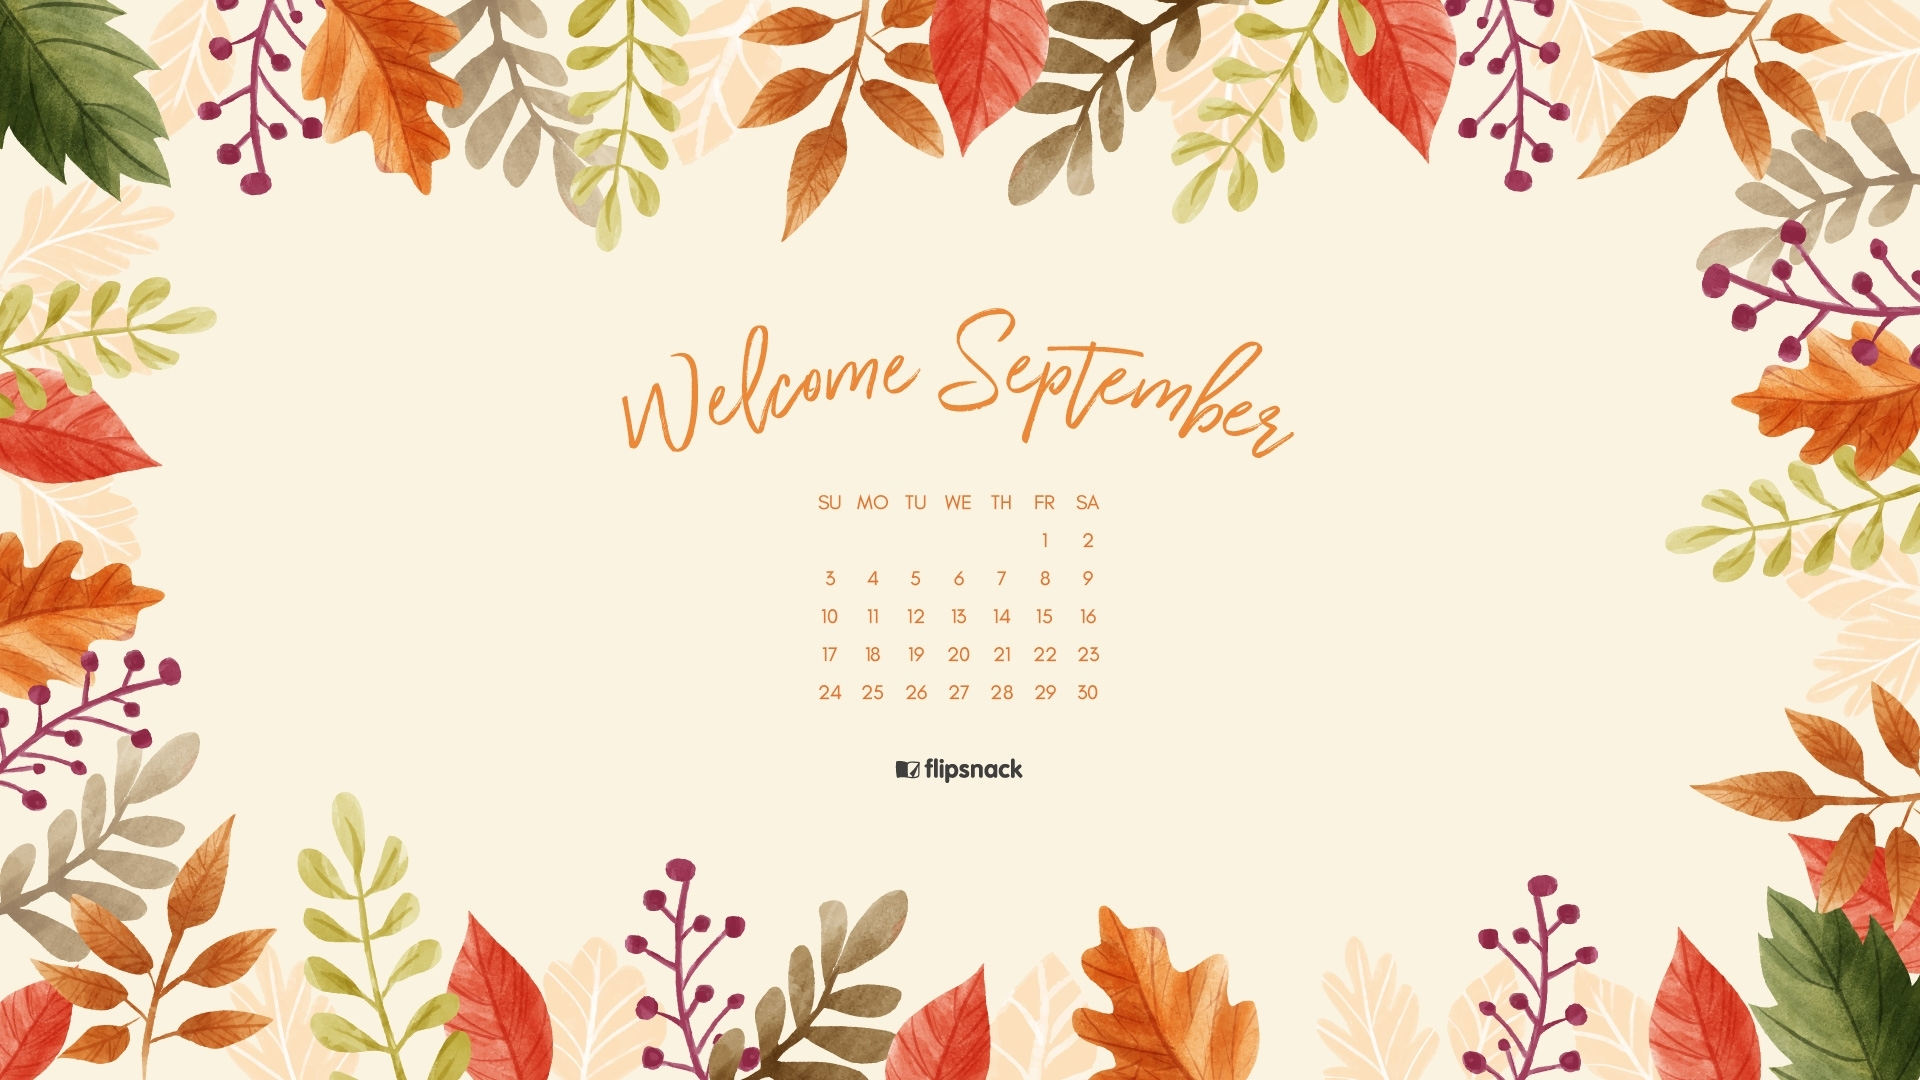 your september 2017 calendar wallpaper is here. get it!